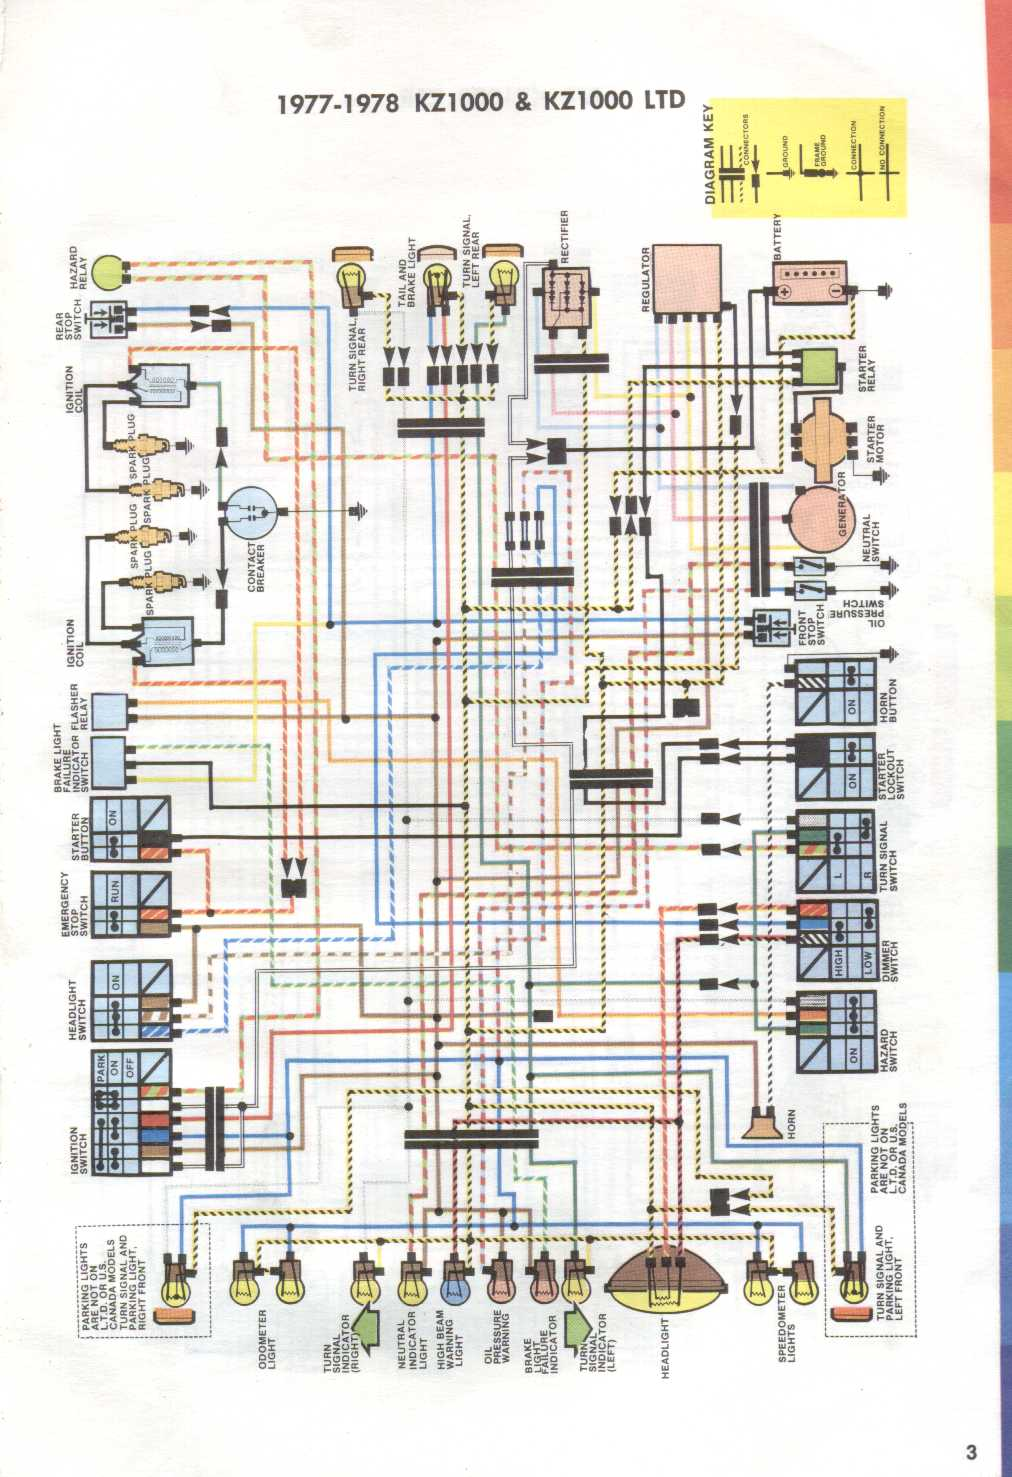 wiring diagram for 1977 1978 kawasaki kz1000 and kz1000ltd evan rh cycles evanfell com KZ1000 Cylinder Head kawasaki kz1000 engine diagram